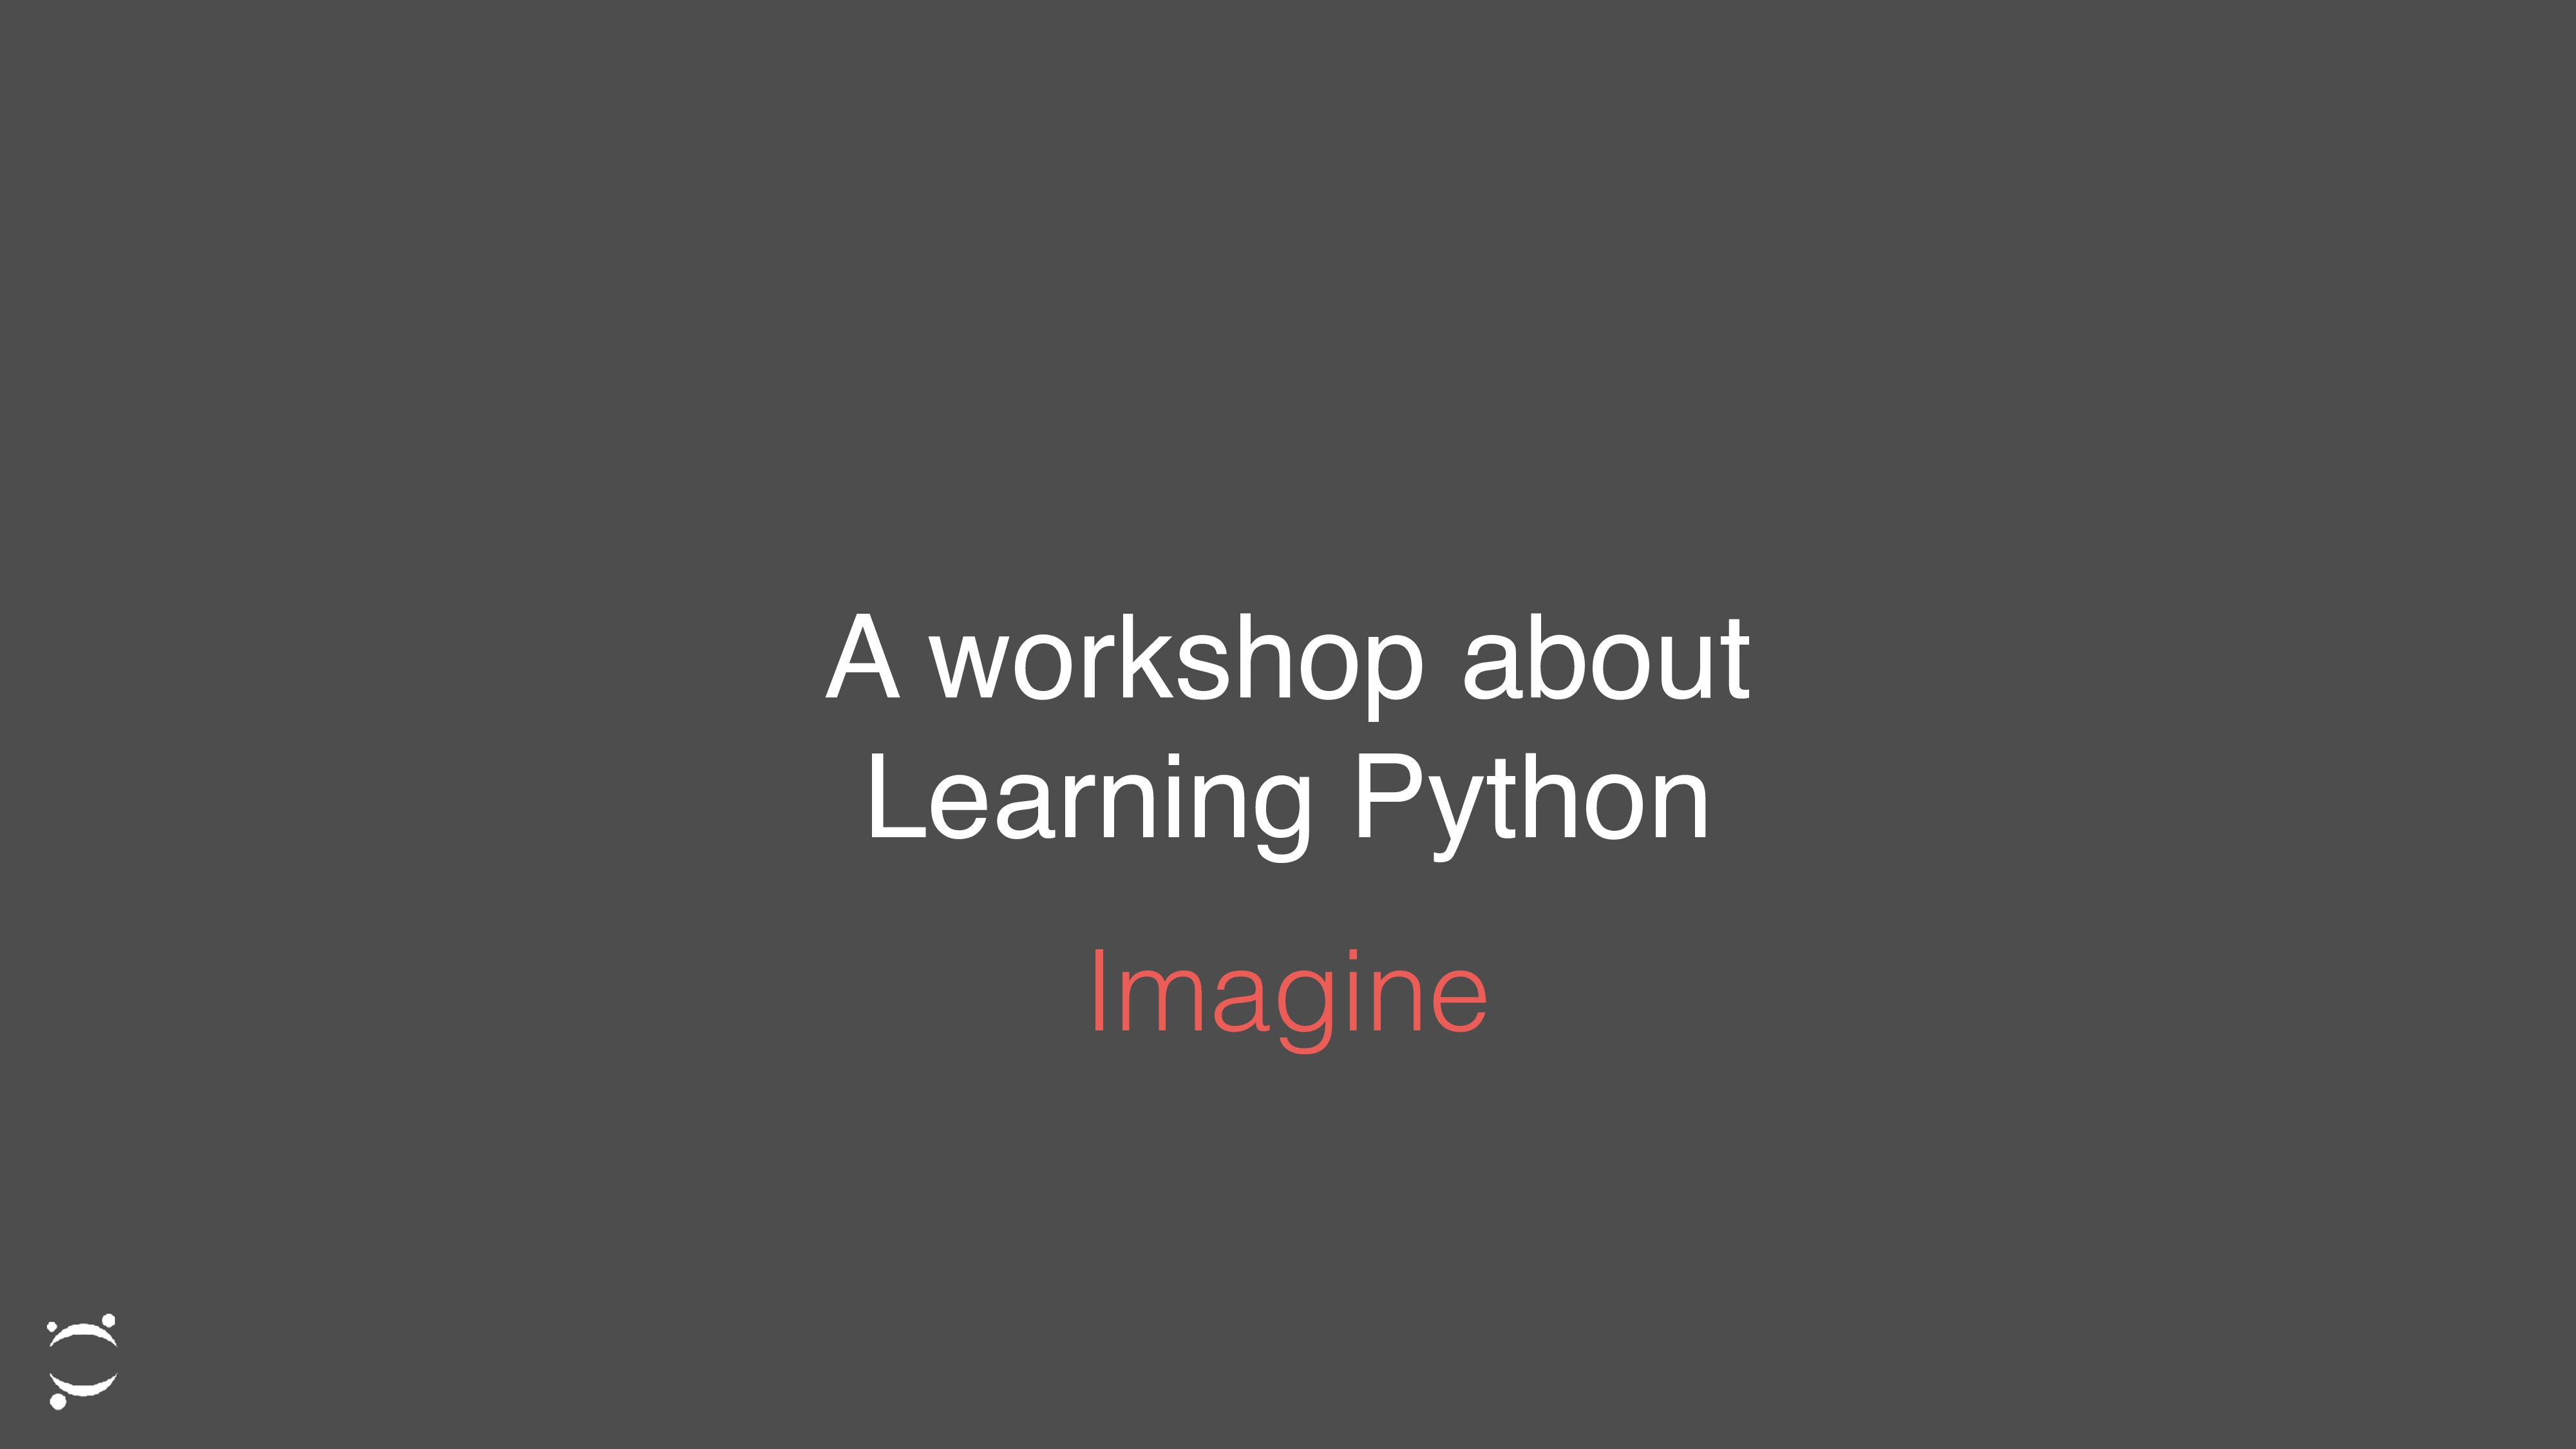 A workshop about Learning Python Imagine